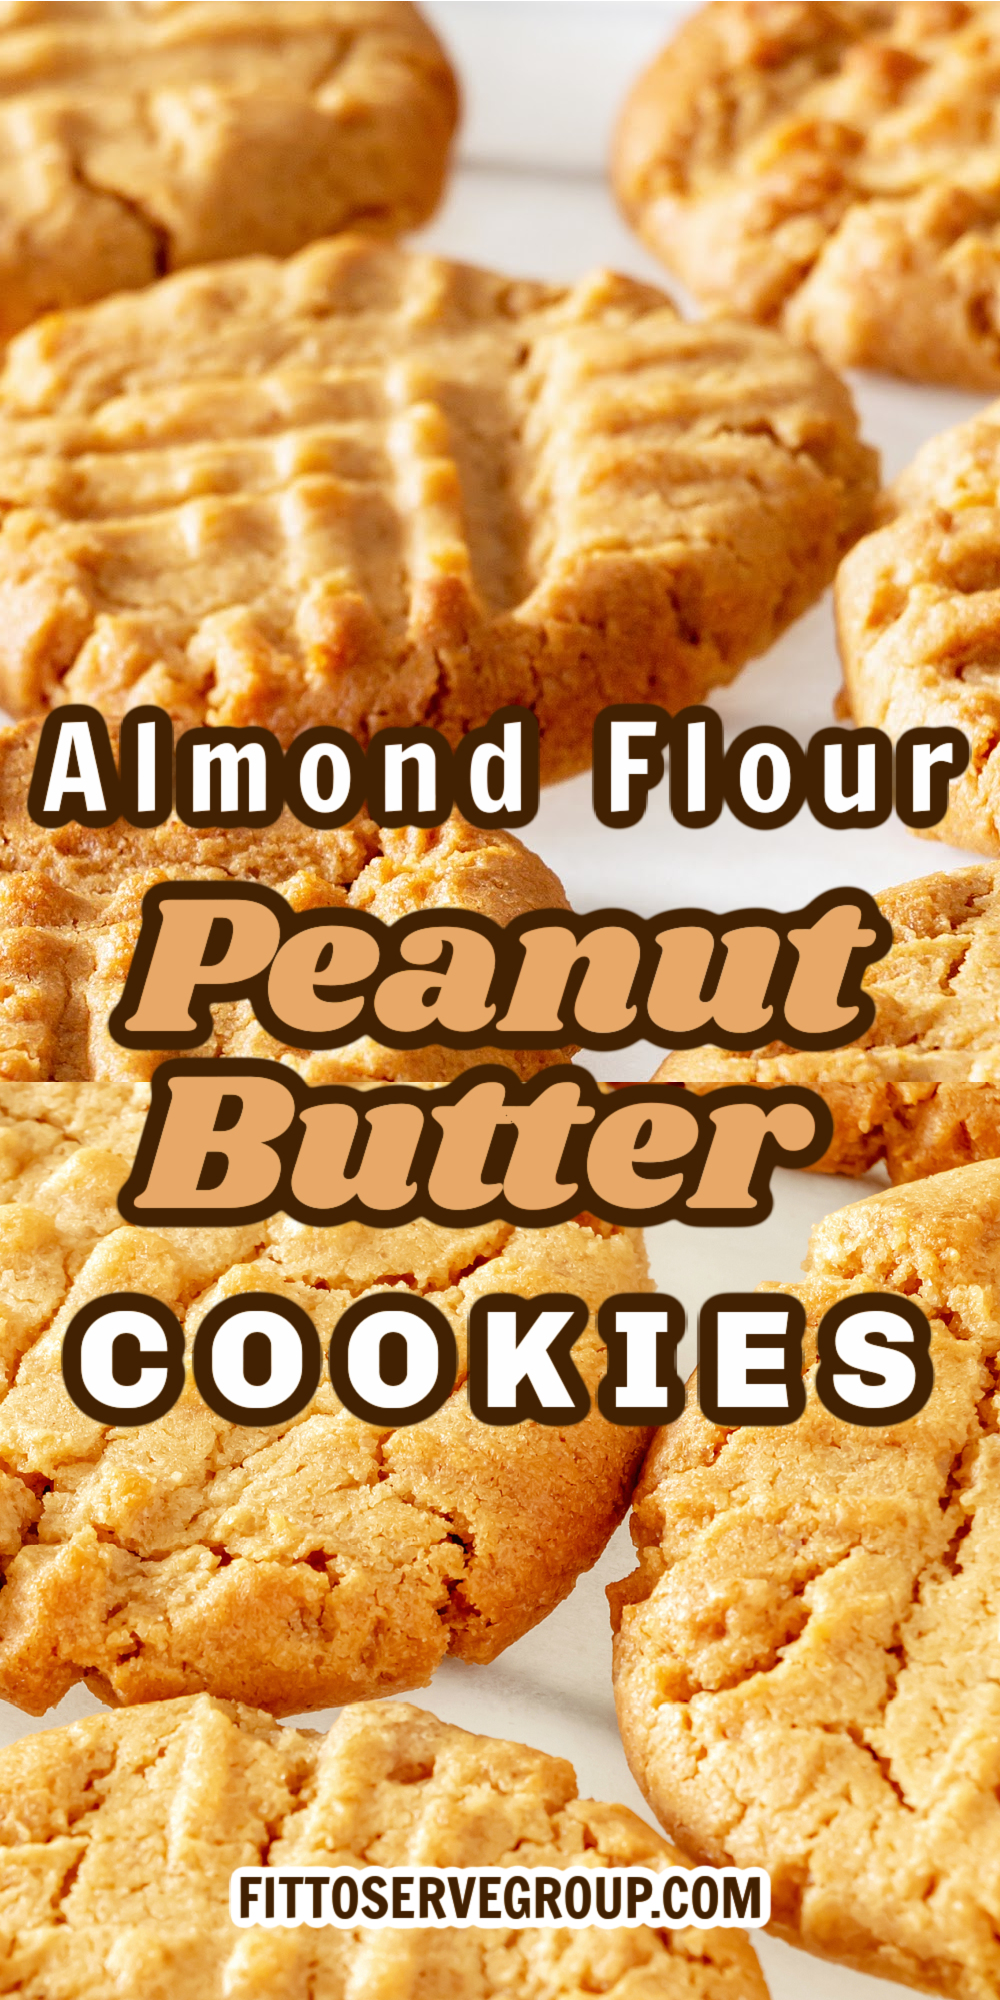 ALMOND FLOUR PEANUT BUTTER COOKIES KETO ON A WHITE PLATE